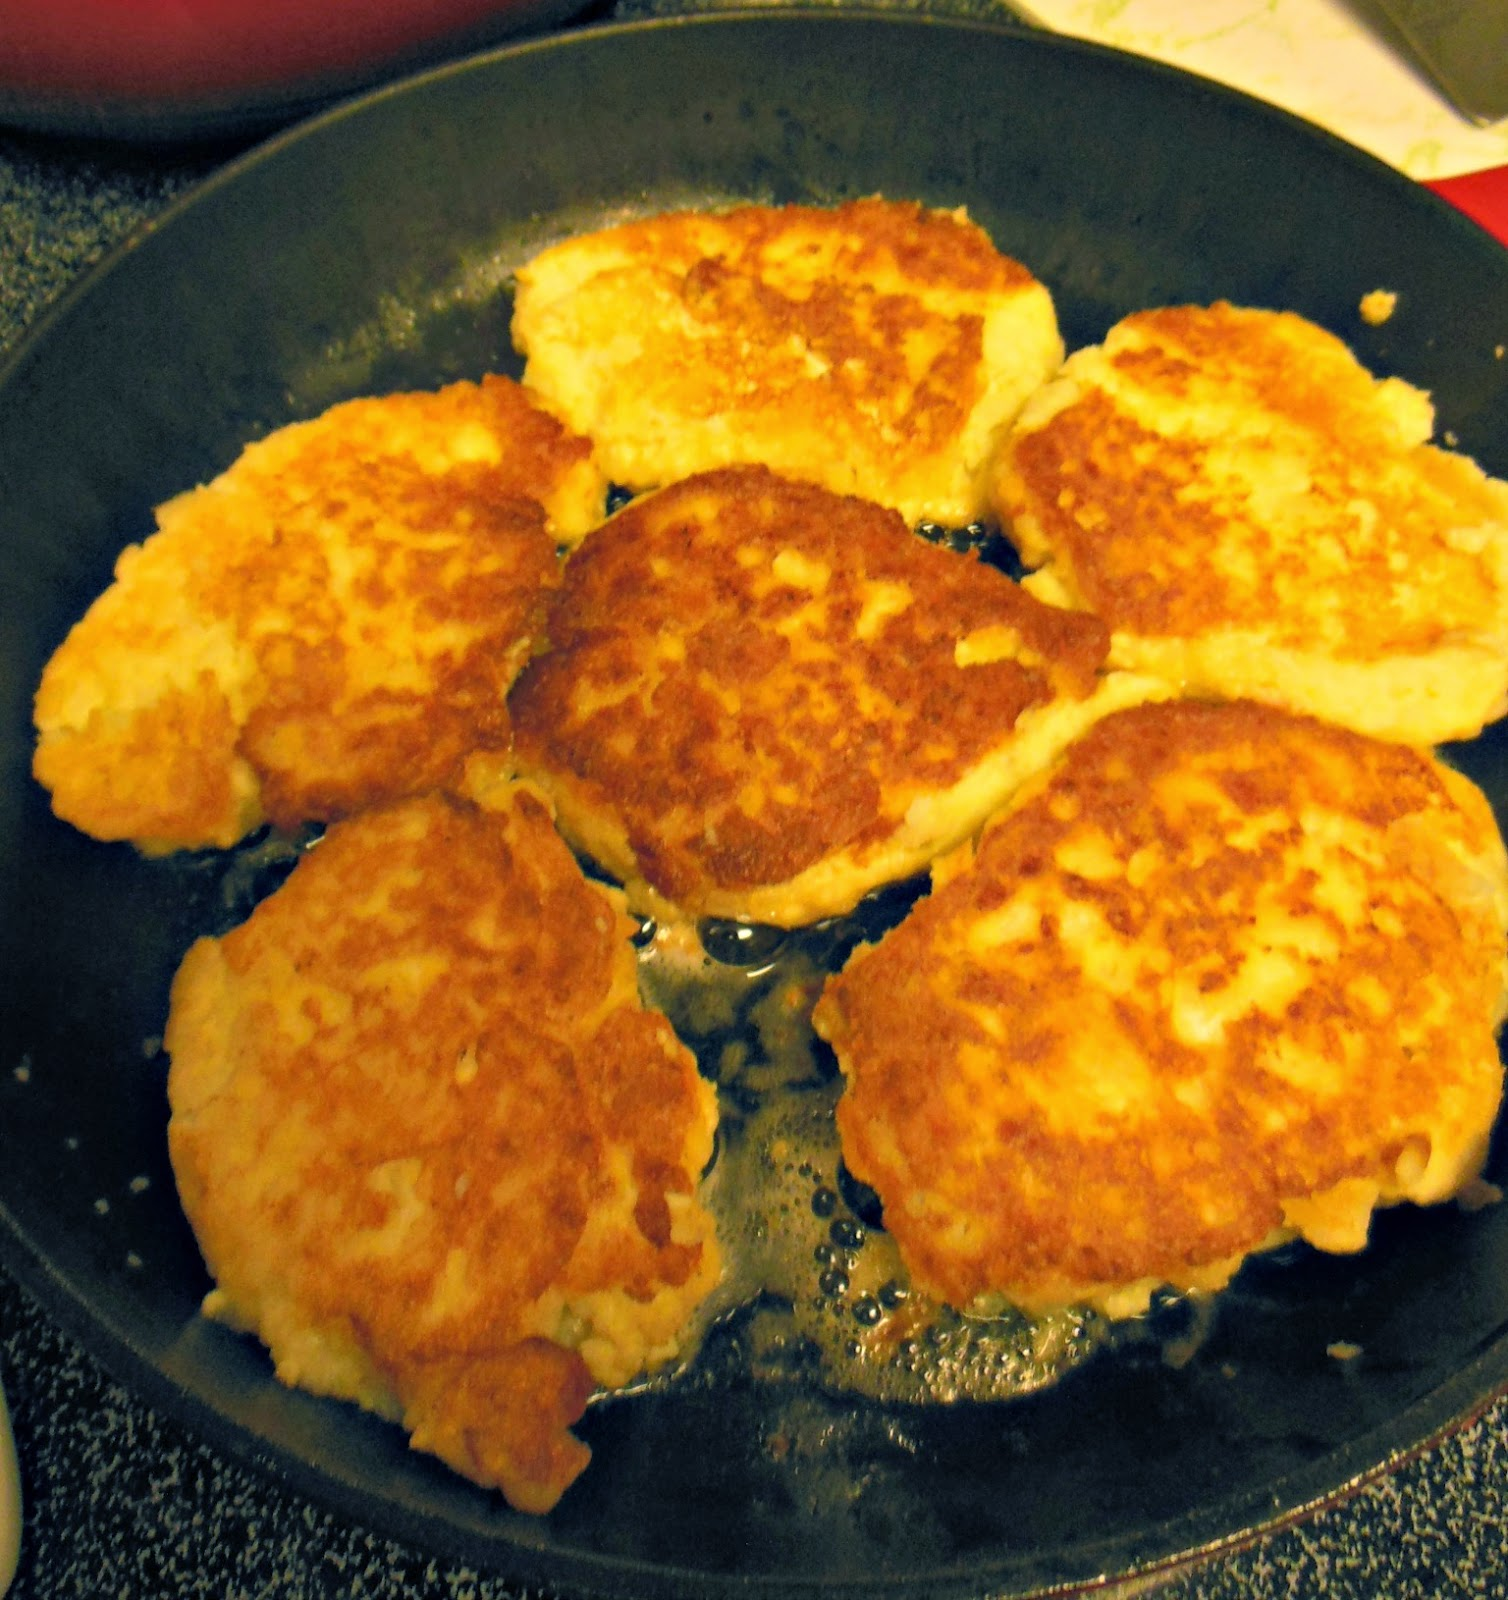 How To Make Fried Potato Cakes From Leftover Mashed Potatoes